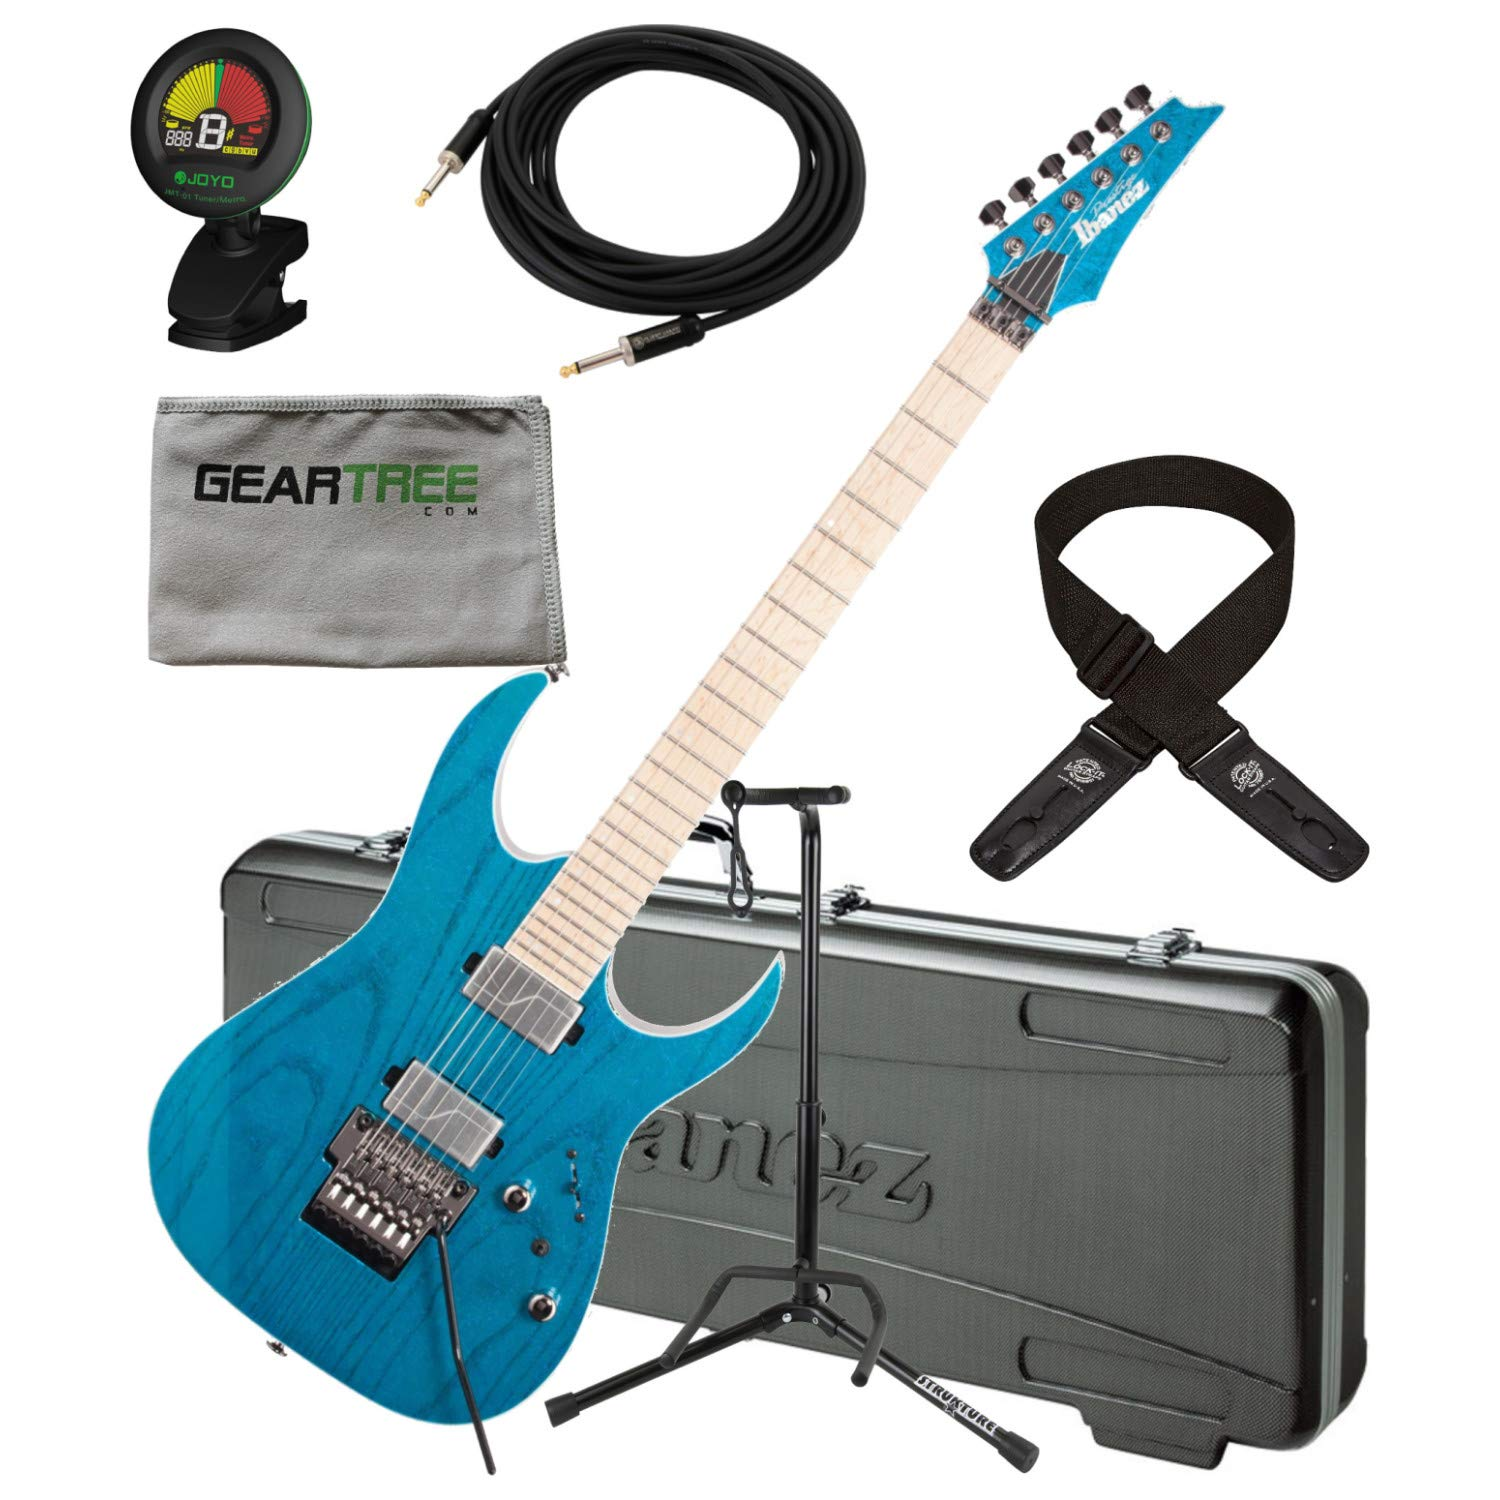 Cheap Ibanez RG5120MFCN RG Prestige Electric Guitar w/Case Tuner Cloth Dlx Cable Black Friday & Cyber Monday 2019